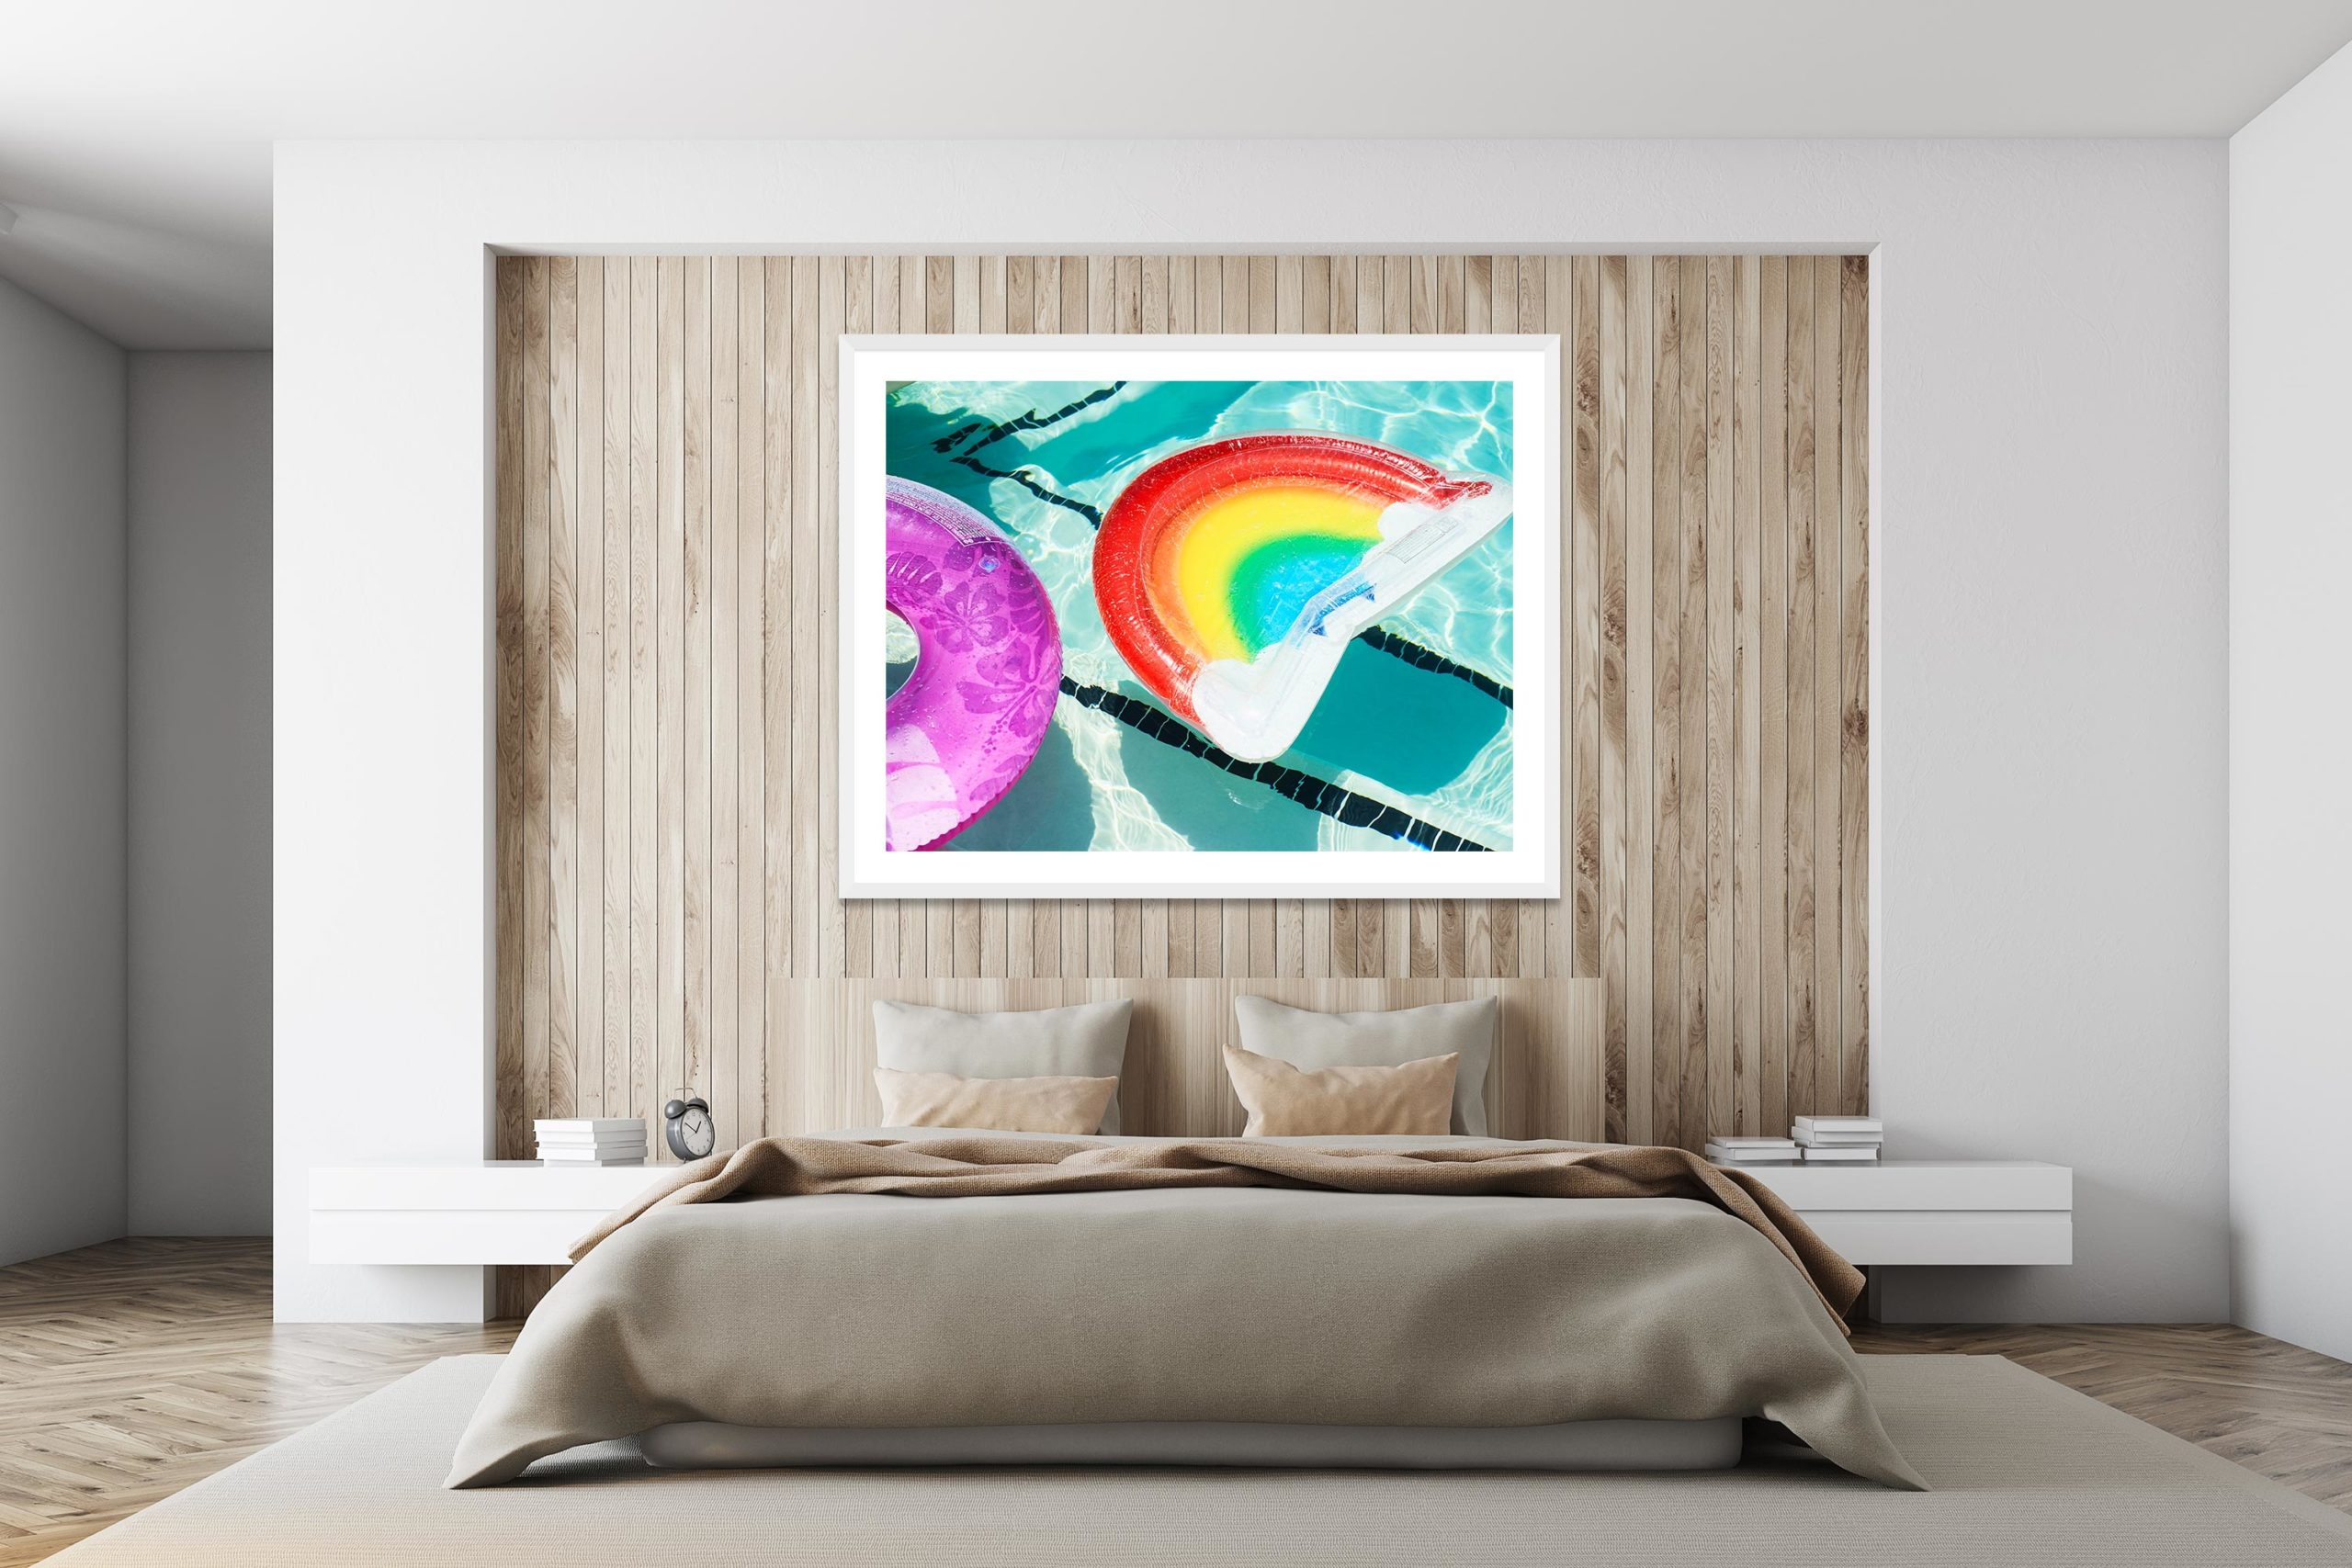 Poolside Daybed - White Frame - I Heart Palm Springs Collection - Fine Art Photography by Toby Dixon